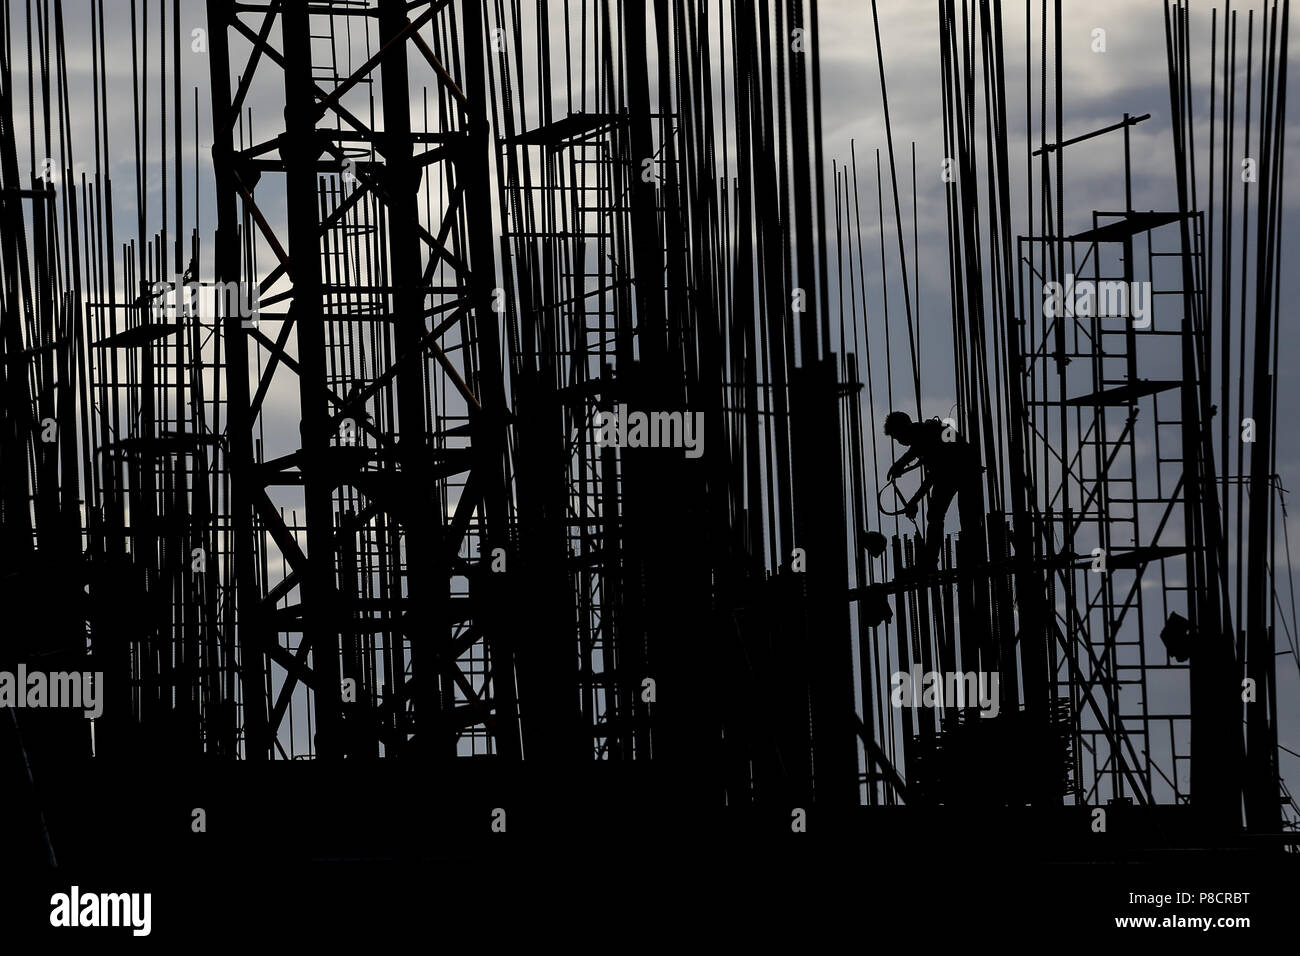 Manila, Philippines. 10th July, 2018. A construction worker stands on top of a scaffolding at a building site in Manila, Philippines on Tuesday. July 10, 2018. Philippines President Rodrigo Duterte is set to have his third State of the Nation Address (SONA) on July 23 where he will highlight his achievements since taking office, such as infastructure and economic development projects. Credit: Basilio H. Sepe/ZUMA Wire/Alamy Live News - Stock Image